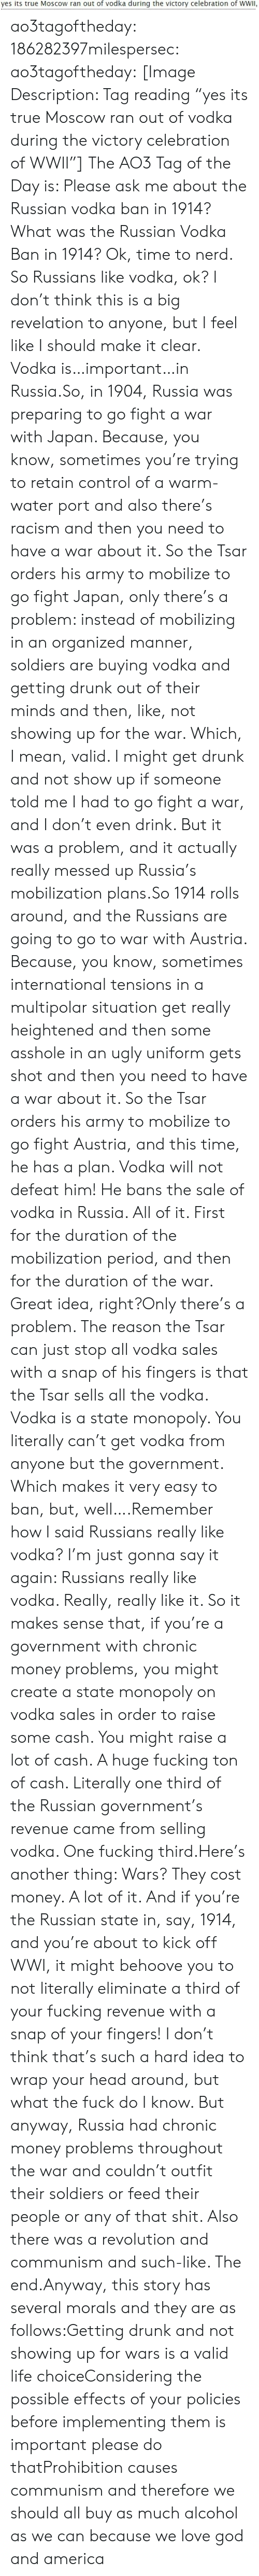 "Army: yes its true Moscow ran out of vodka during the victory celebration of WWII, ao3tagoftheday:  186282397milespersec:  ao3tagoftheday:  [Image Description: Tag reading ""yes its true Moscow ran out of vodka during the victory celebration of WWII""]  The AO3 Tag of the Day is: Please ask me about the Russian vodka ban in 1914?   What was the Russian Vodka Ban in 1914?  Ok, time to nerd. So Russians like vodka, ok? I don't think this is a big revelation to anyone, but I feel like I should make it clear. Vodka is…important…in Russia.So, in 1904, Russia was preparing to go fight a war with Japan. Because, you know, sometimes you're trying to retain control of a warm-water port and also there's racism and then you need to have a war about it. So the Tsar orders his army to mobilize to go fight Japan, only there's a problem: instead of mobilizing in an organized manner, soldiers are buying vodka and getting drunk out of their minds and then, like, not showing up for the war. Which, I mean, valid. I might get drunk and not show up if someone told me I had to go fight a war, and I don't even drink. But it was a problem, and it actually really messed up Russia's mobilization plans.So 1914 rolls around, and the Russians are going to go to war with Austria. Because, you know, sometimes international tensions in a multipolar situation get really heightened and then some asshole in an ugly uniform gets shot and then you need to have a war about it. So the Tsar orders his army to mobilize to go fight Austria, and this time, he has a plan. Vodka will not defeat him! He bans the sale of vodka in Russia. All of it. First for the duration of the mobilization period, and then for the duration of the war. Great idea, right?Only there's a problem. The reason the Tsar can just stop all vodka sales with a snap of his fingers is that the Tsar sells all the vodka. Vodka is a state monopoly. You literally can't get vodka from anyone but the government. Which makes it very easy to ban, but, well….Remember how I said Russians really like vodka? I'm just gonna say it again: Russians really like vodka. Really, really like it. So it makes sense that, if you're a government with chronic money problems, you might create a state monopoly on vodka sales in order to raise some cash. You might raise a lot of cash. A huge fucking ton of cash. Literally one third of the Russian government's revenue came from selling vodka. One fucking third.Here's another thing: Wars? They cost money. A lot of it. And if you're the Russian state in, say, 1914, and you're about to kick off WWI, it might behoove you to not literally eliminate a third of your fucking revenue with a snap of your fingers! I don't think that's such a hard idea to wrap your head around, but what the fuck do I know. But anyway, Russia had chronic money problems throughout the war and couldn't outfit their soldiers or feed their people or any of that shit. Also there was a revolution and communism and such-like. The end.Anyway, this story has several morals and they are as follows:Getting drunk and not showing up for wars is a valid life choiceConsidering the possible effects of your policies before implementing them is important please do thatProhibition causes communism and therefore we should all buy as much alcohol as we can because we love god and america"